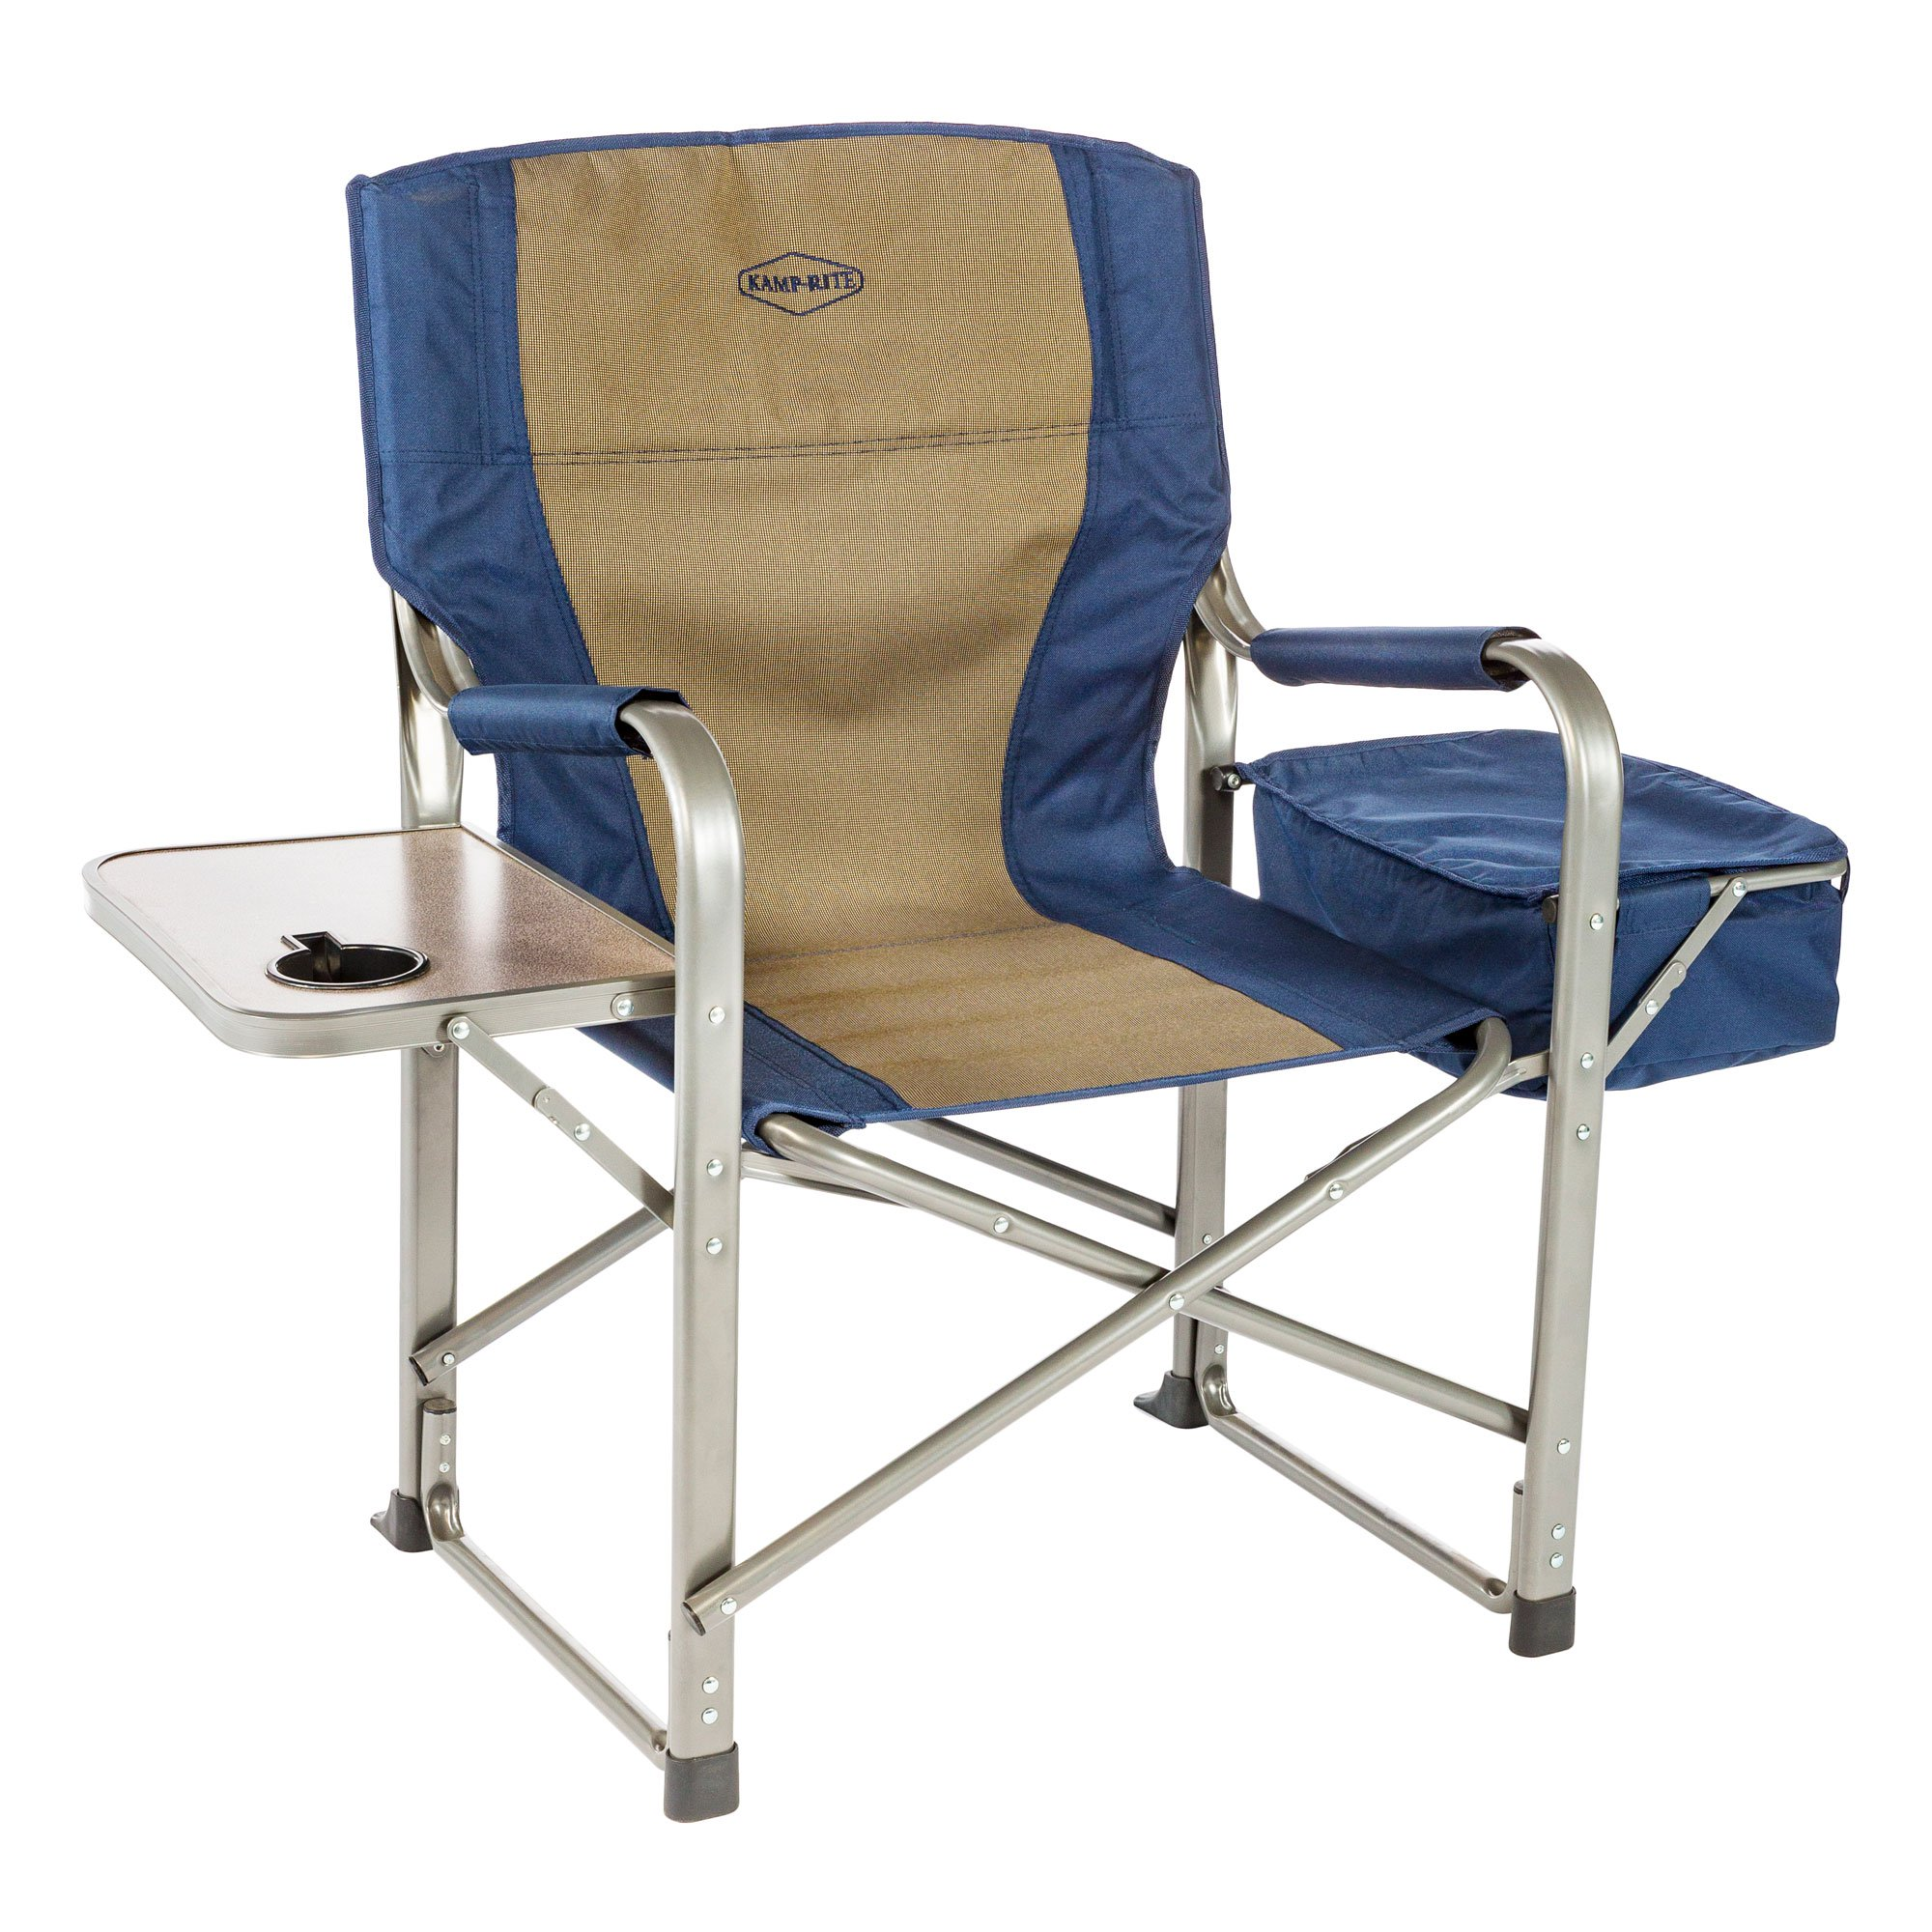 details about kamp rite outdoor camp folding director chair with side table cooler resource ashx piece nesting set oval brass and glass coffee thin sofa dale tiffany kids reading